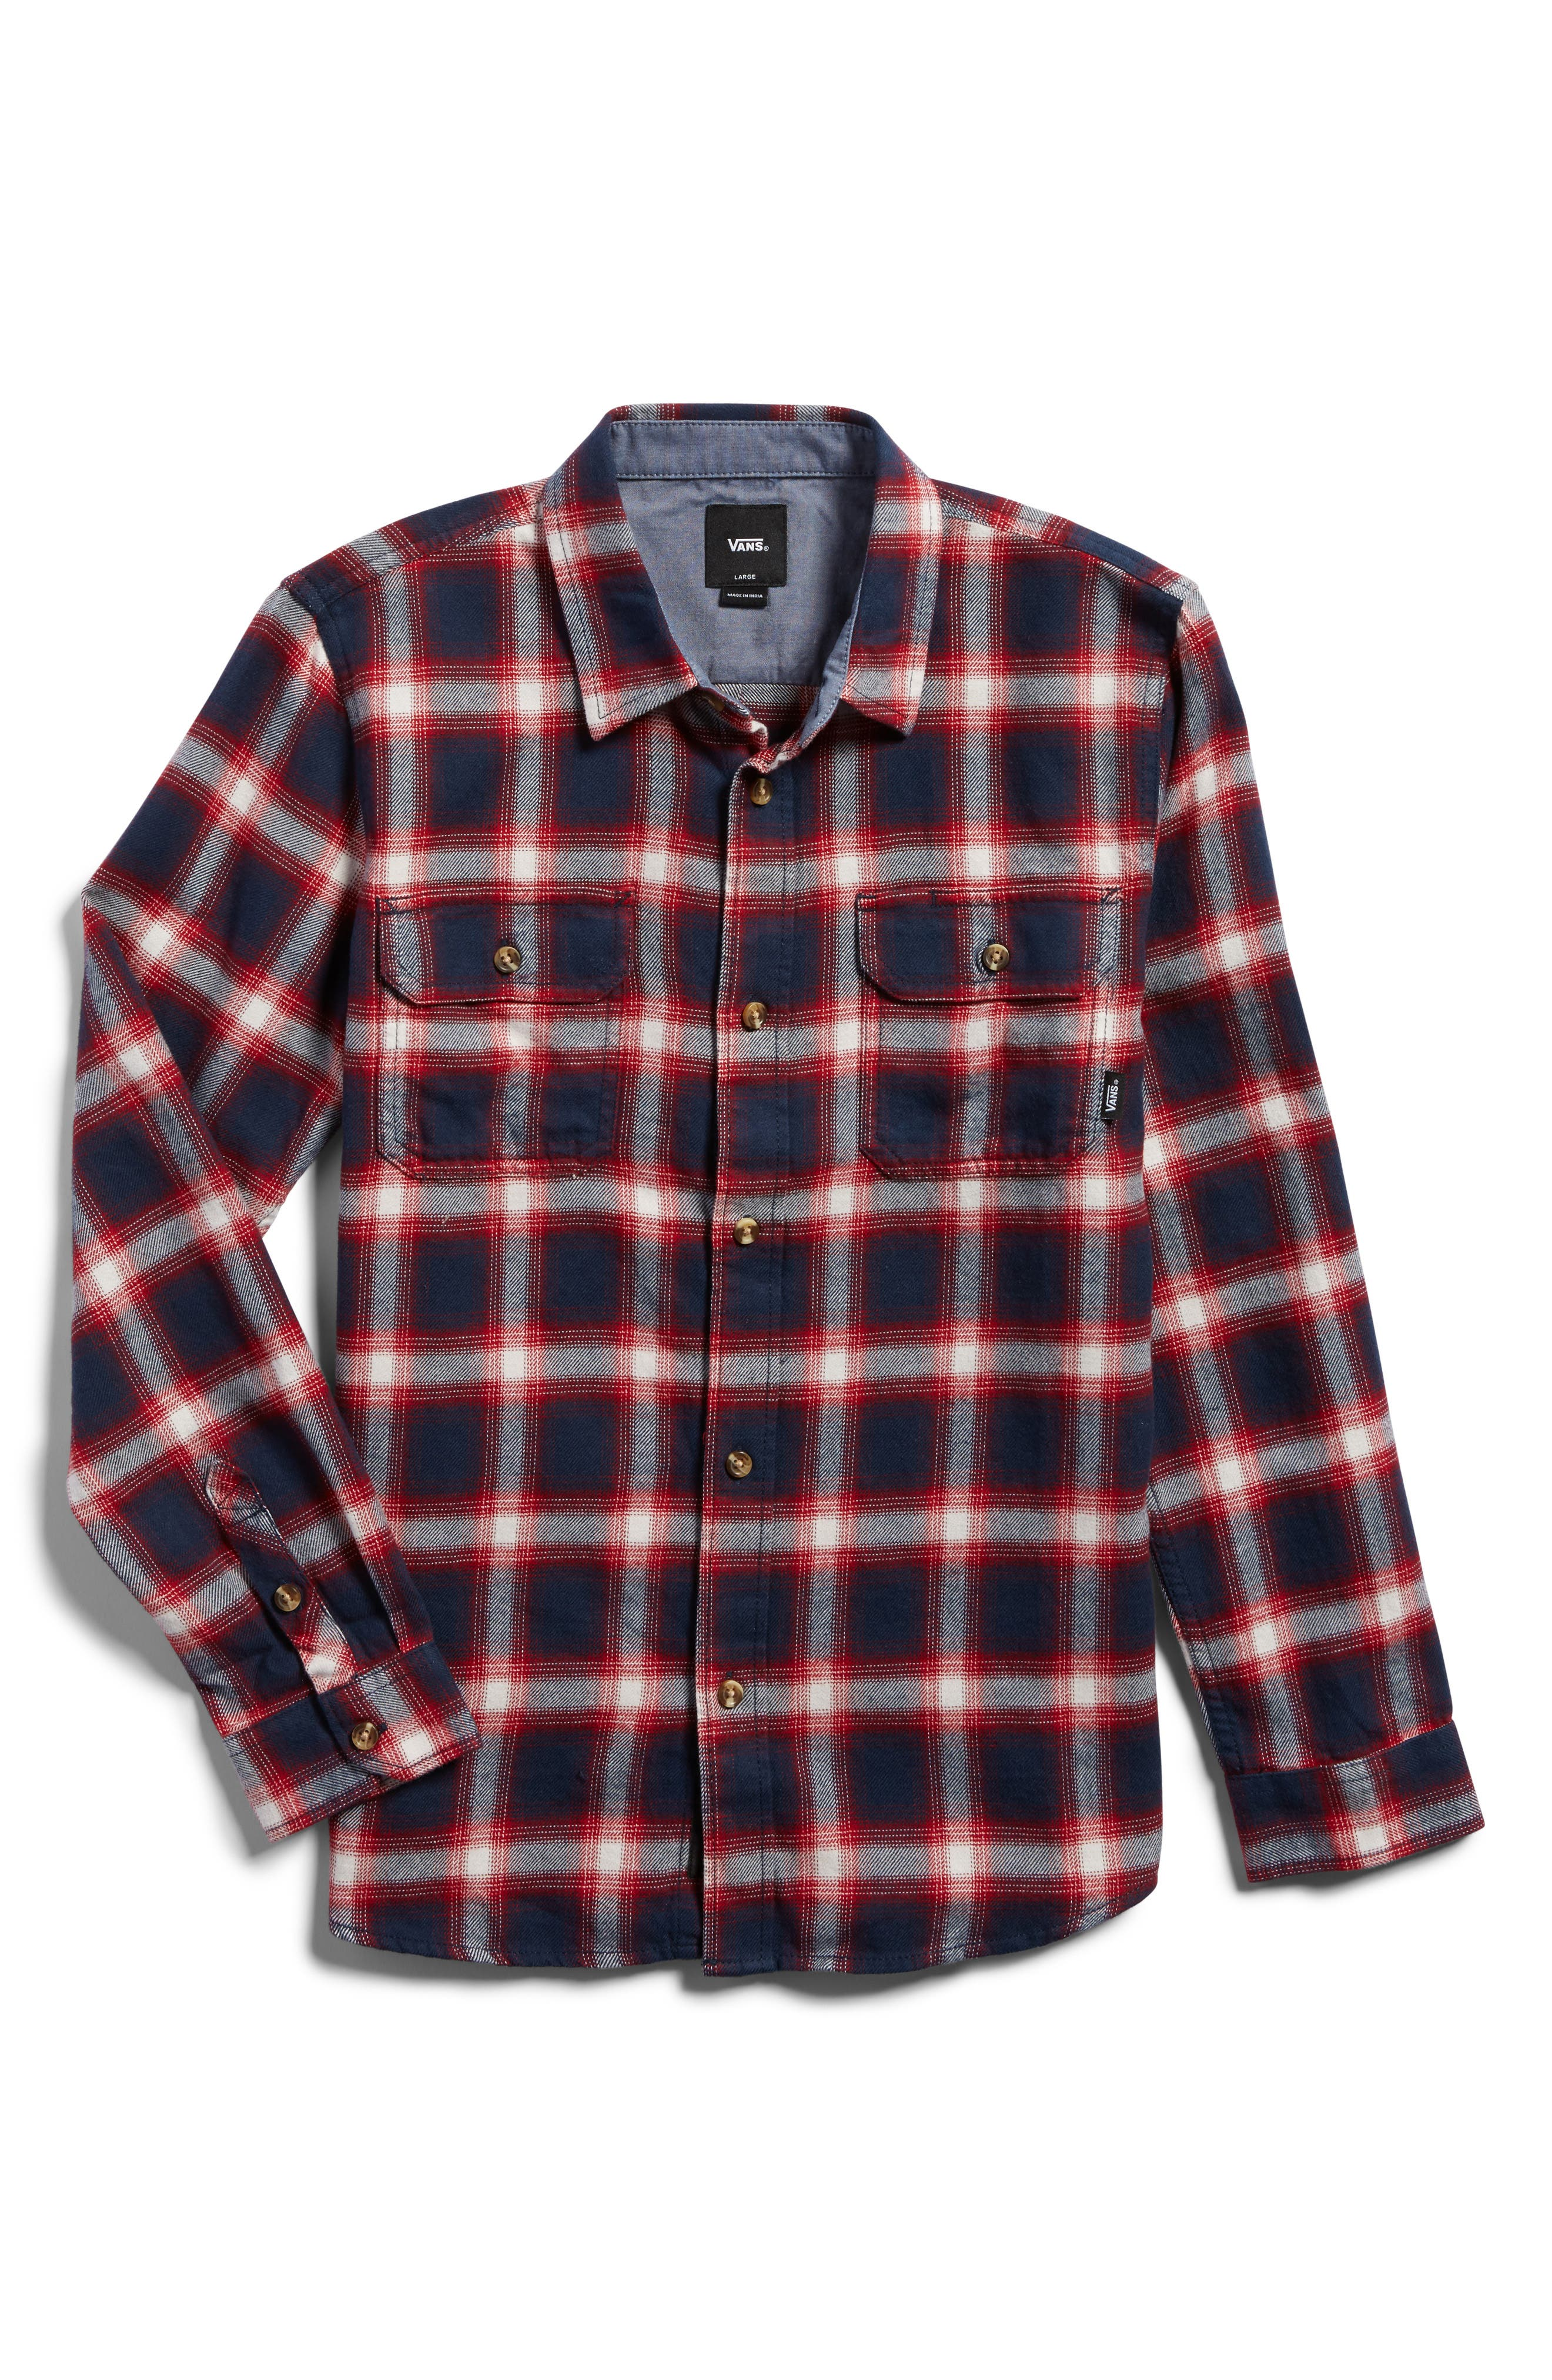 Vans Beechwood Plaid Flannel Shirt (Big Boys)